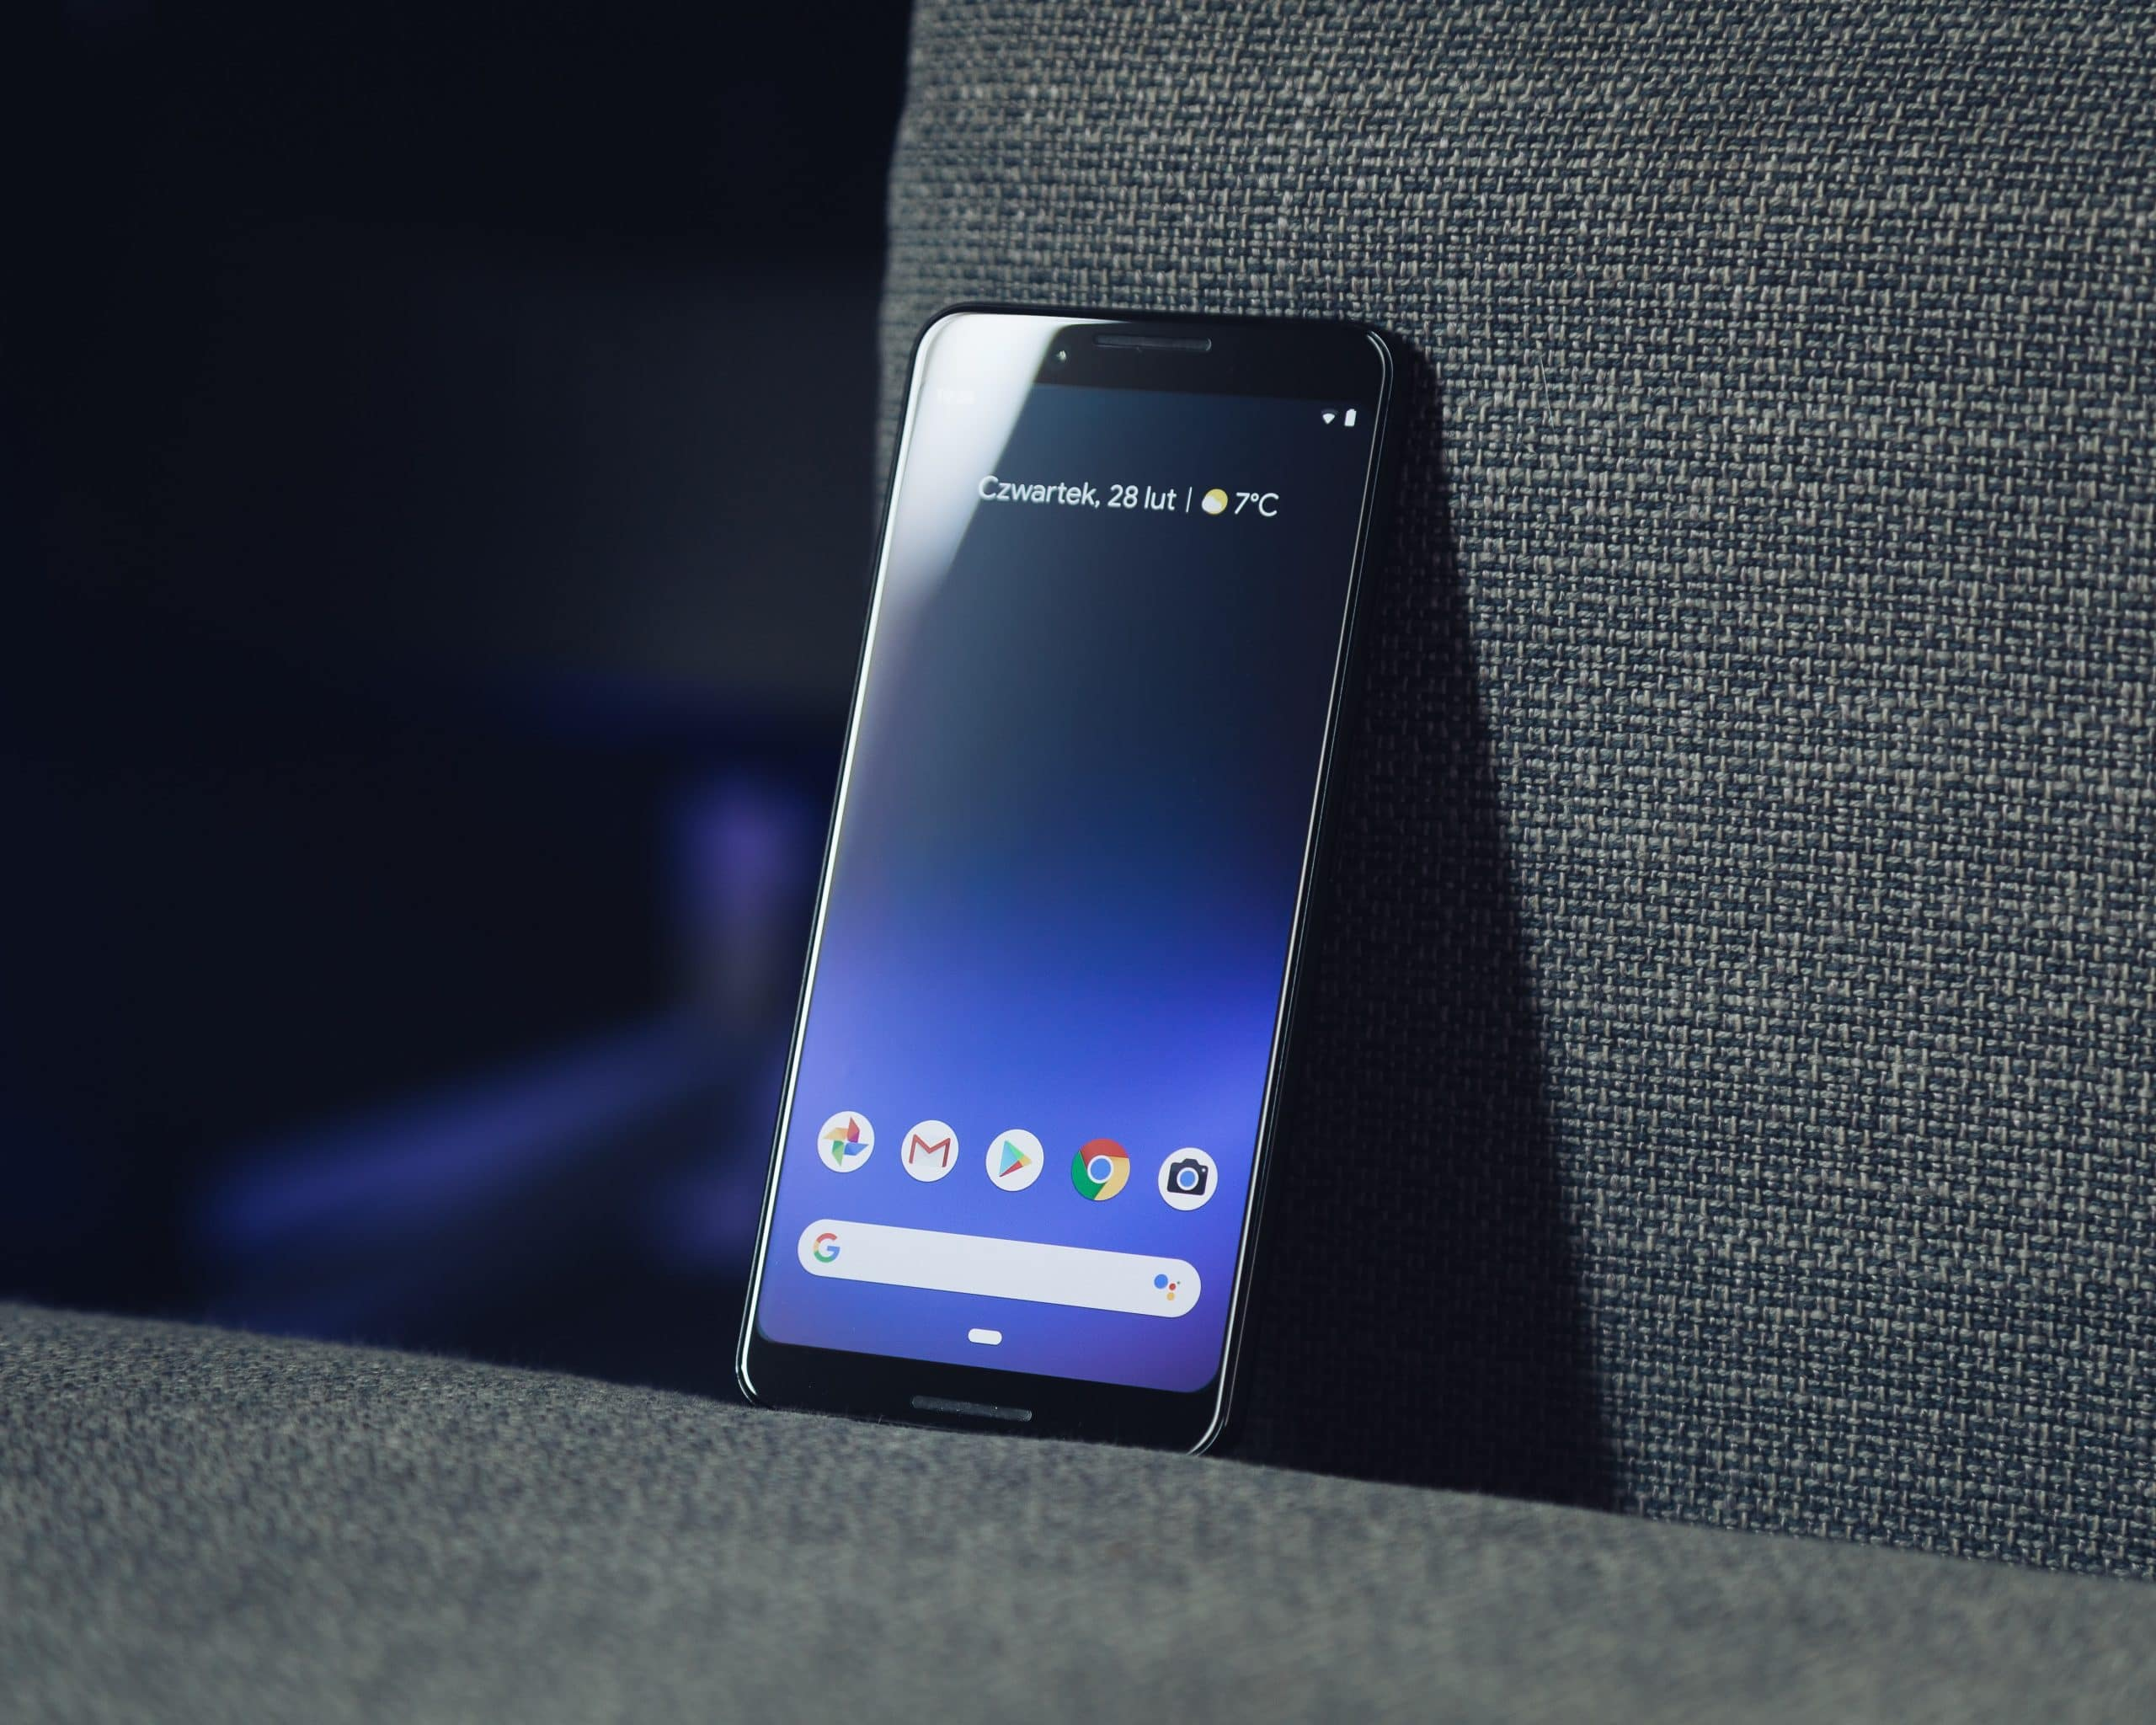 What Samsung Phone Should I Get